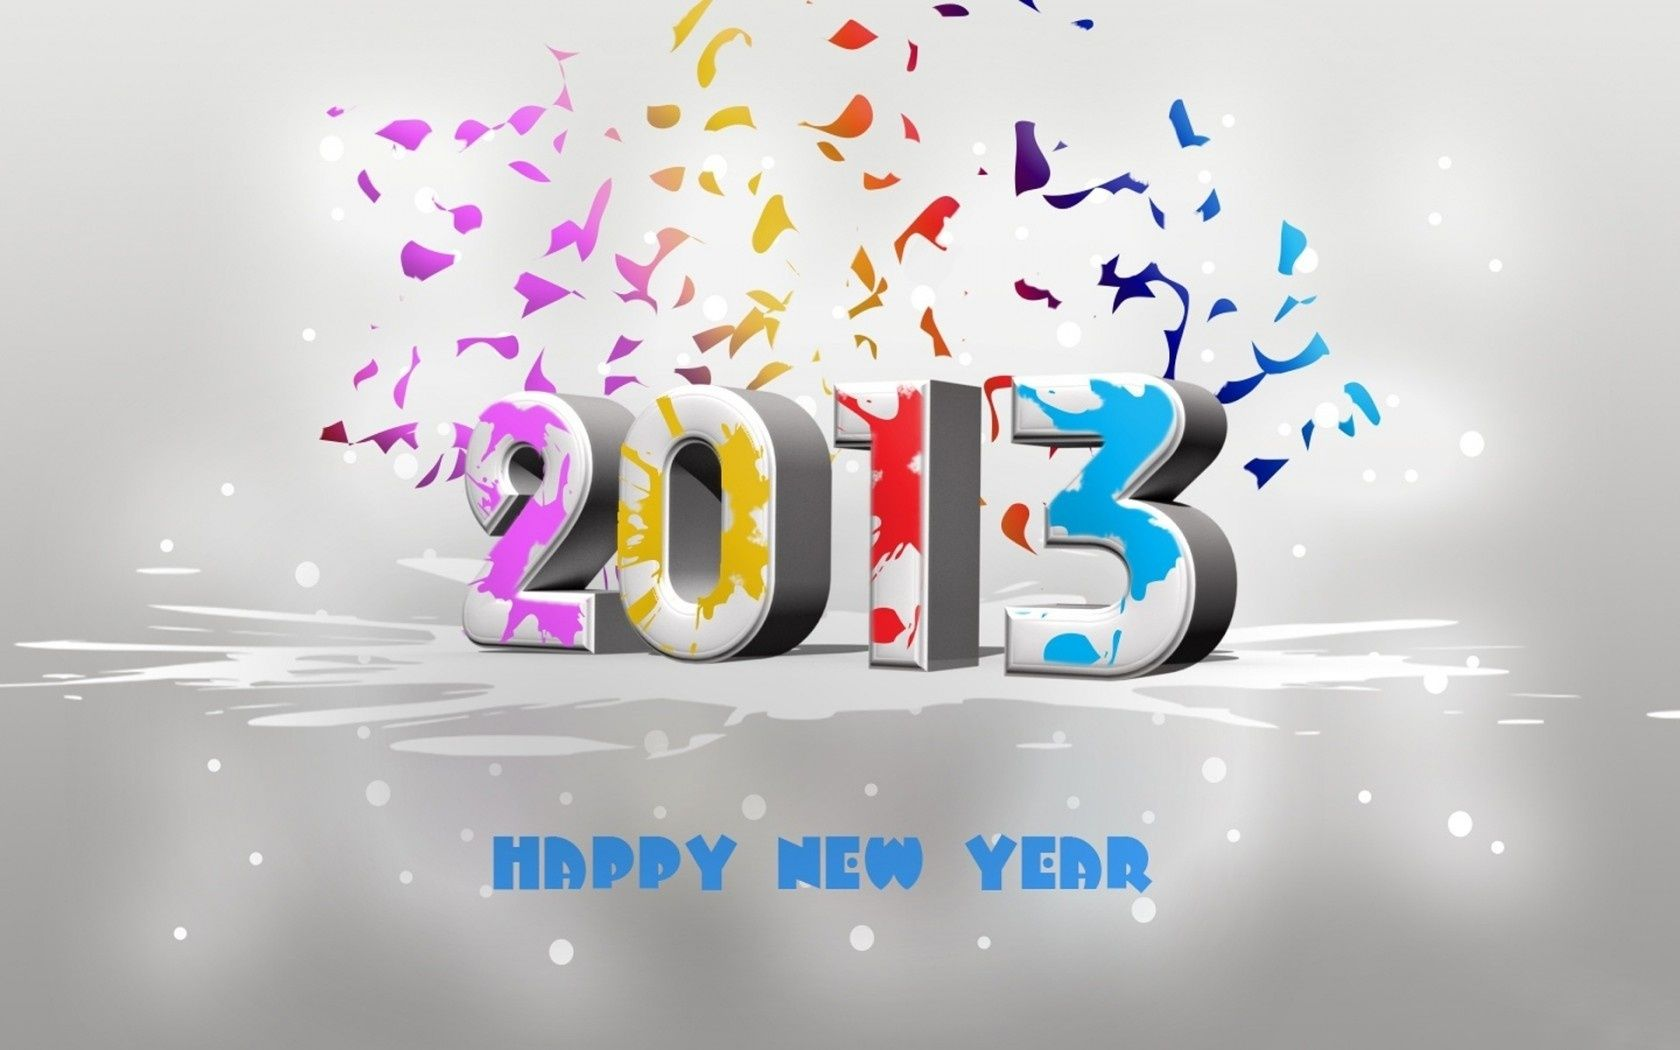 happy new year new year 2013 новый год